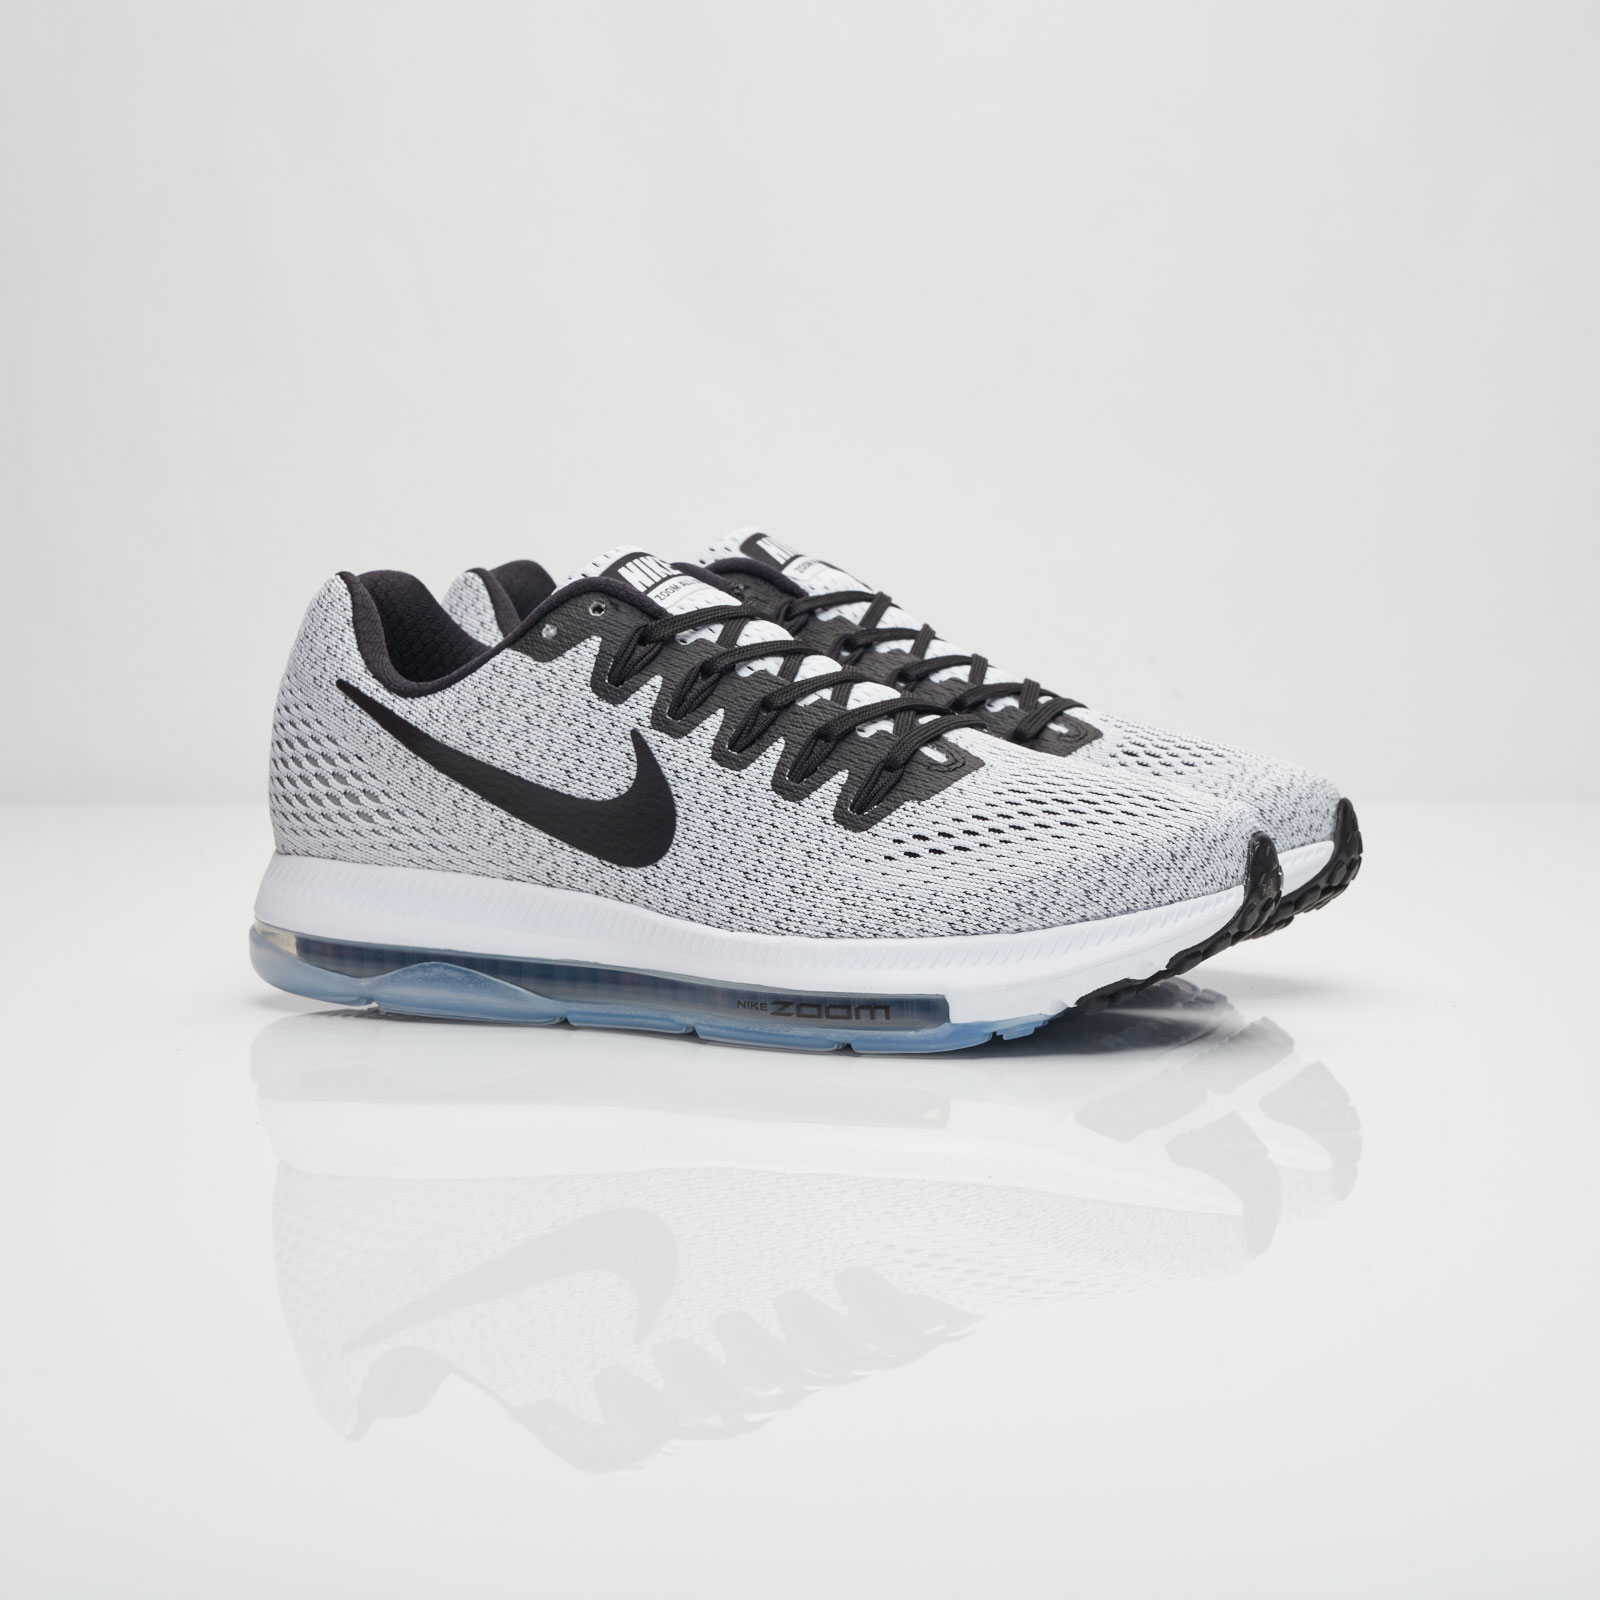 new product 31778 0a4ab Nike Wmns Zoom All Out Low - 889122-100 - Sneakersnstuff | sneakers ...